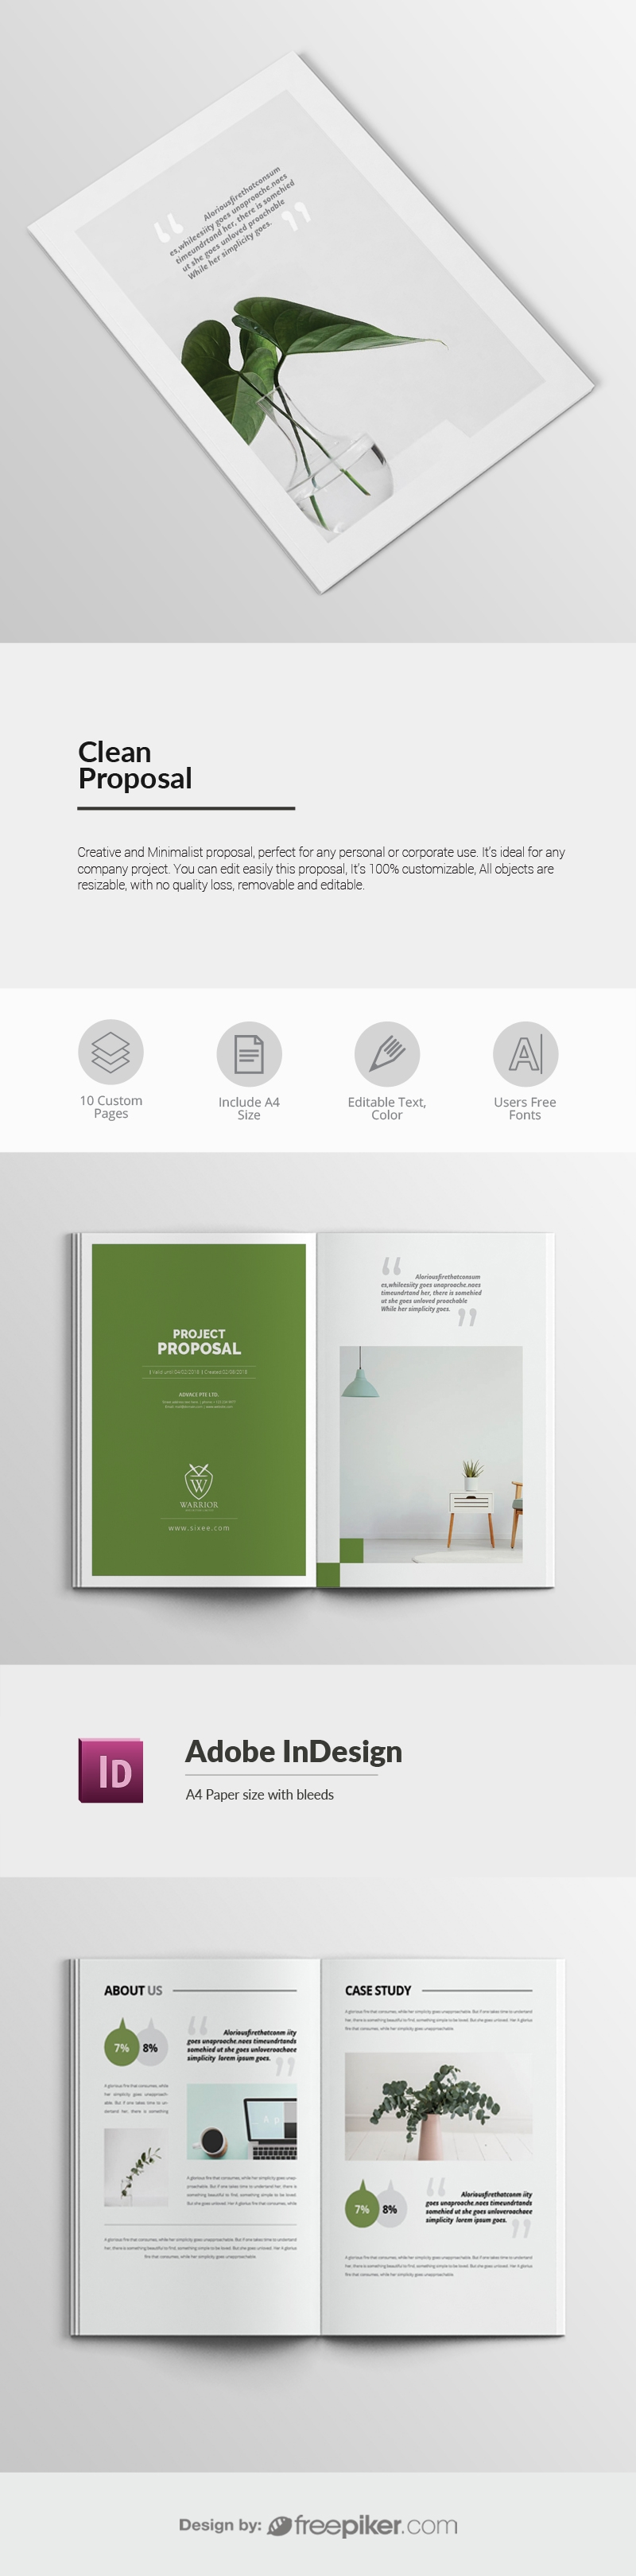 Clean Proposal Template